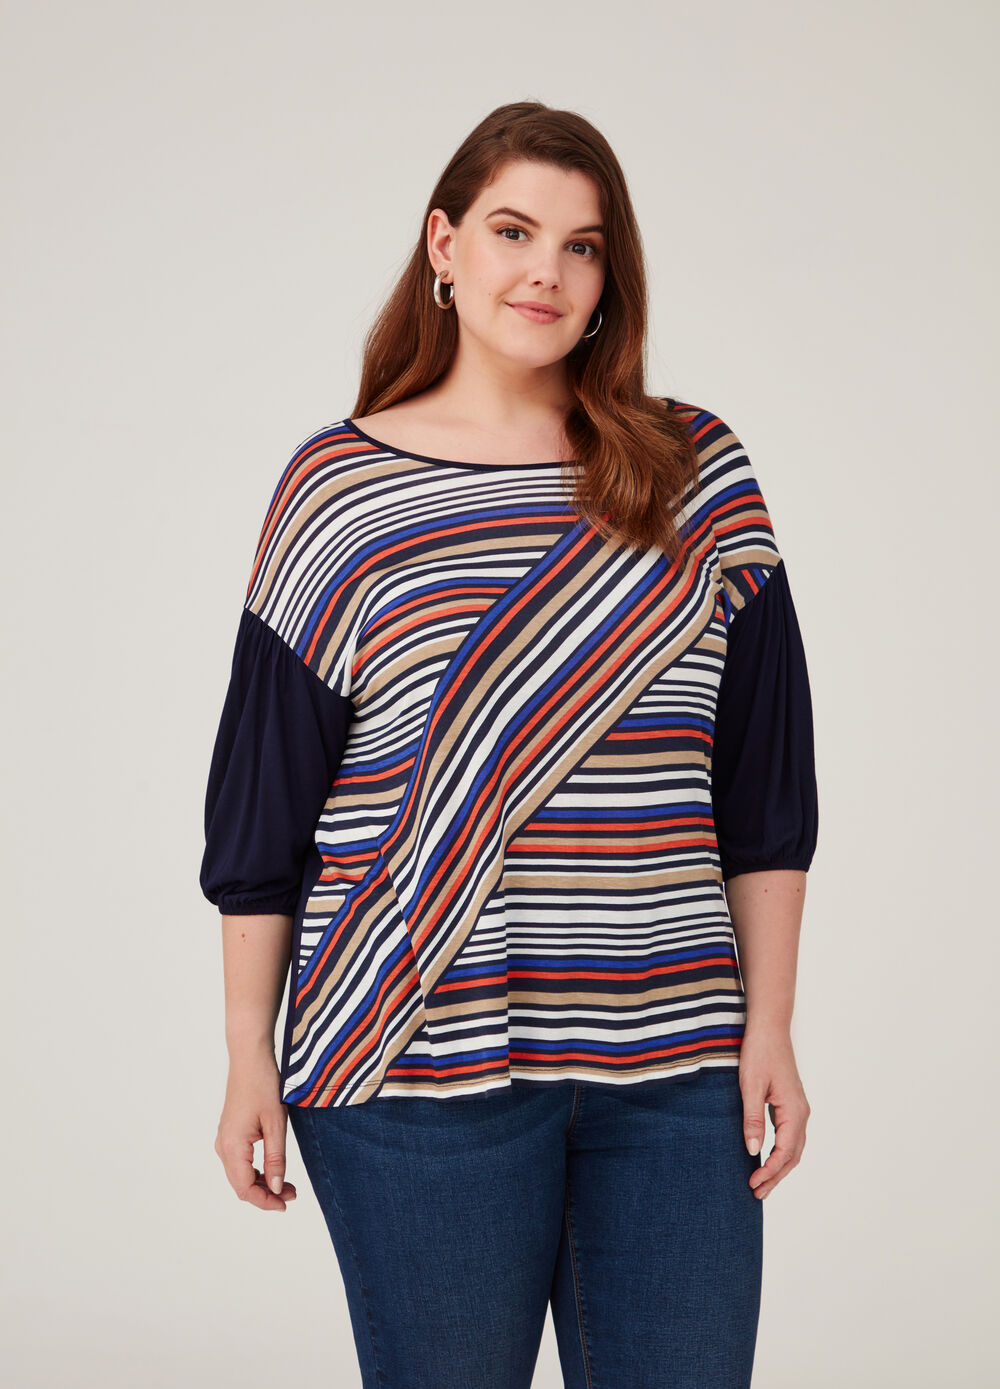 Curvy viscose T-shirt with striped pattern